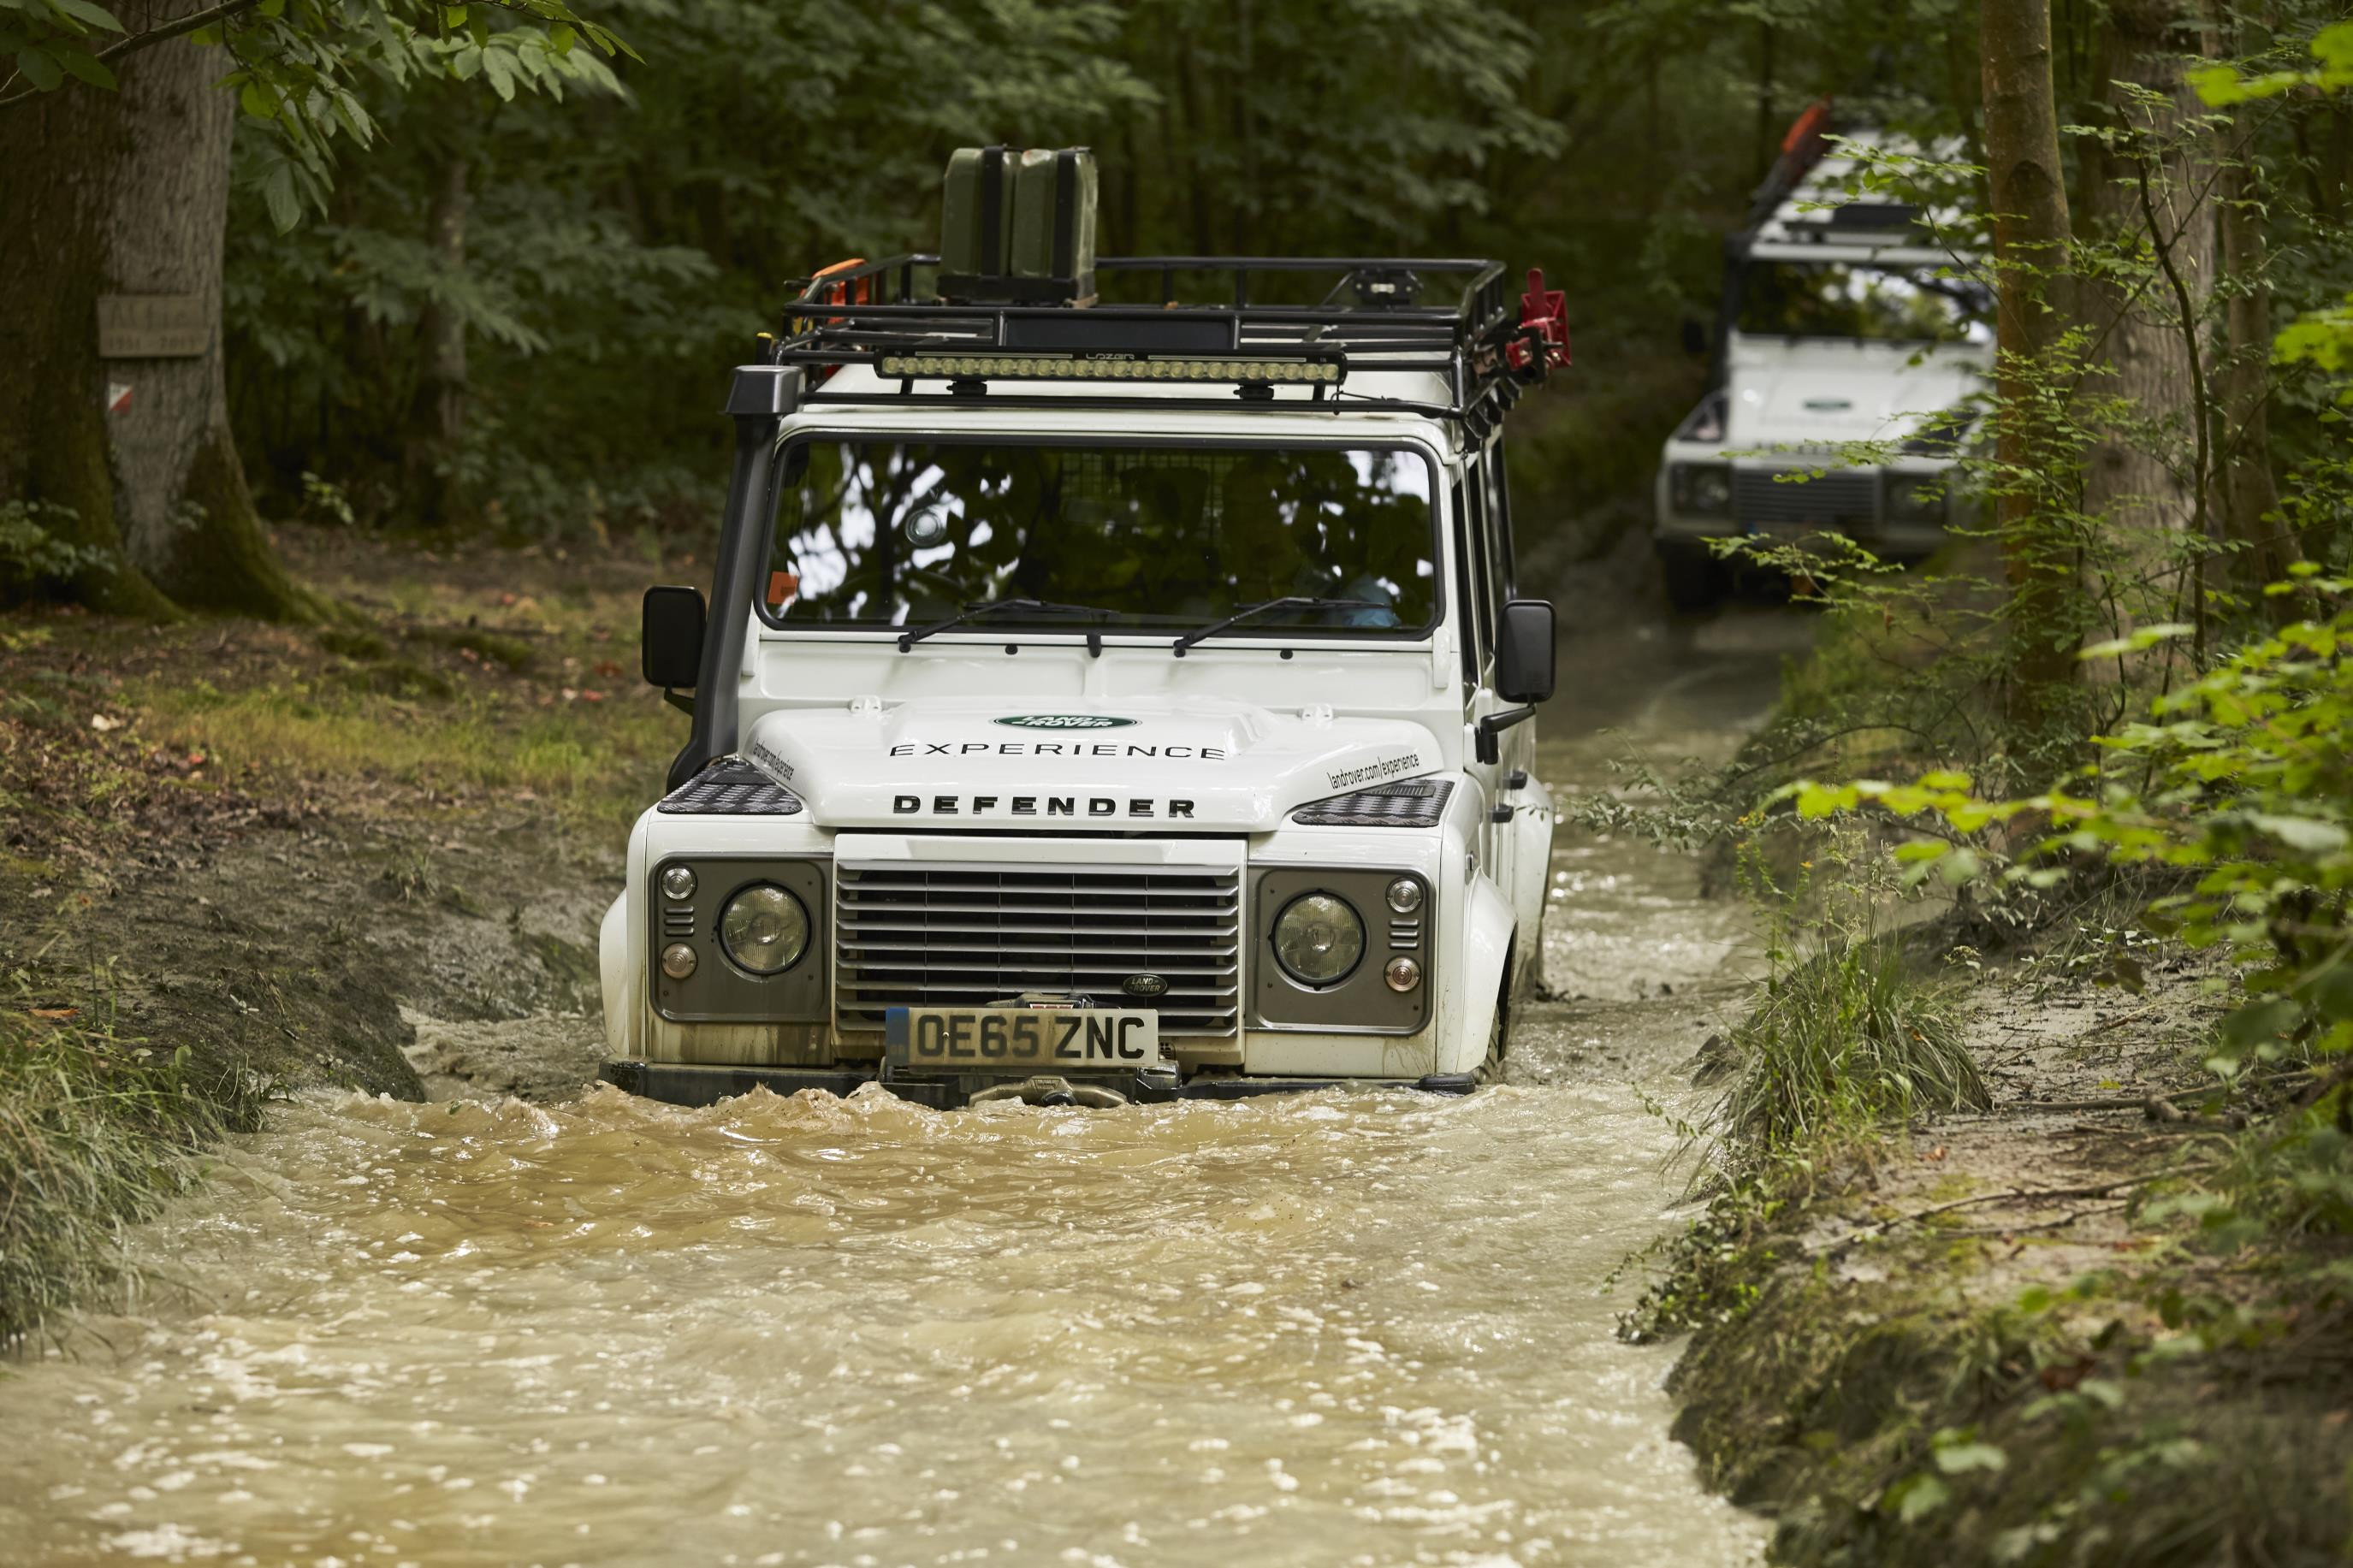 White Land Rover Defender driving through a stream